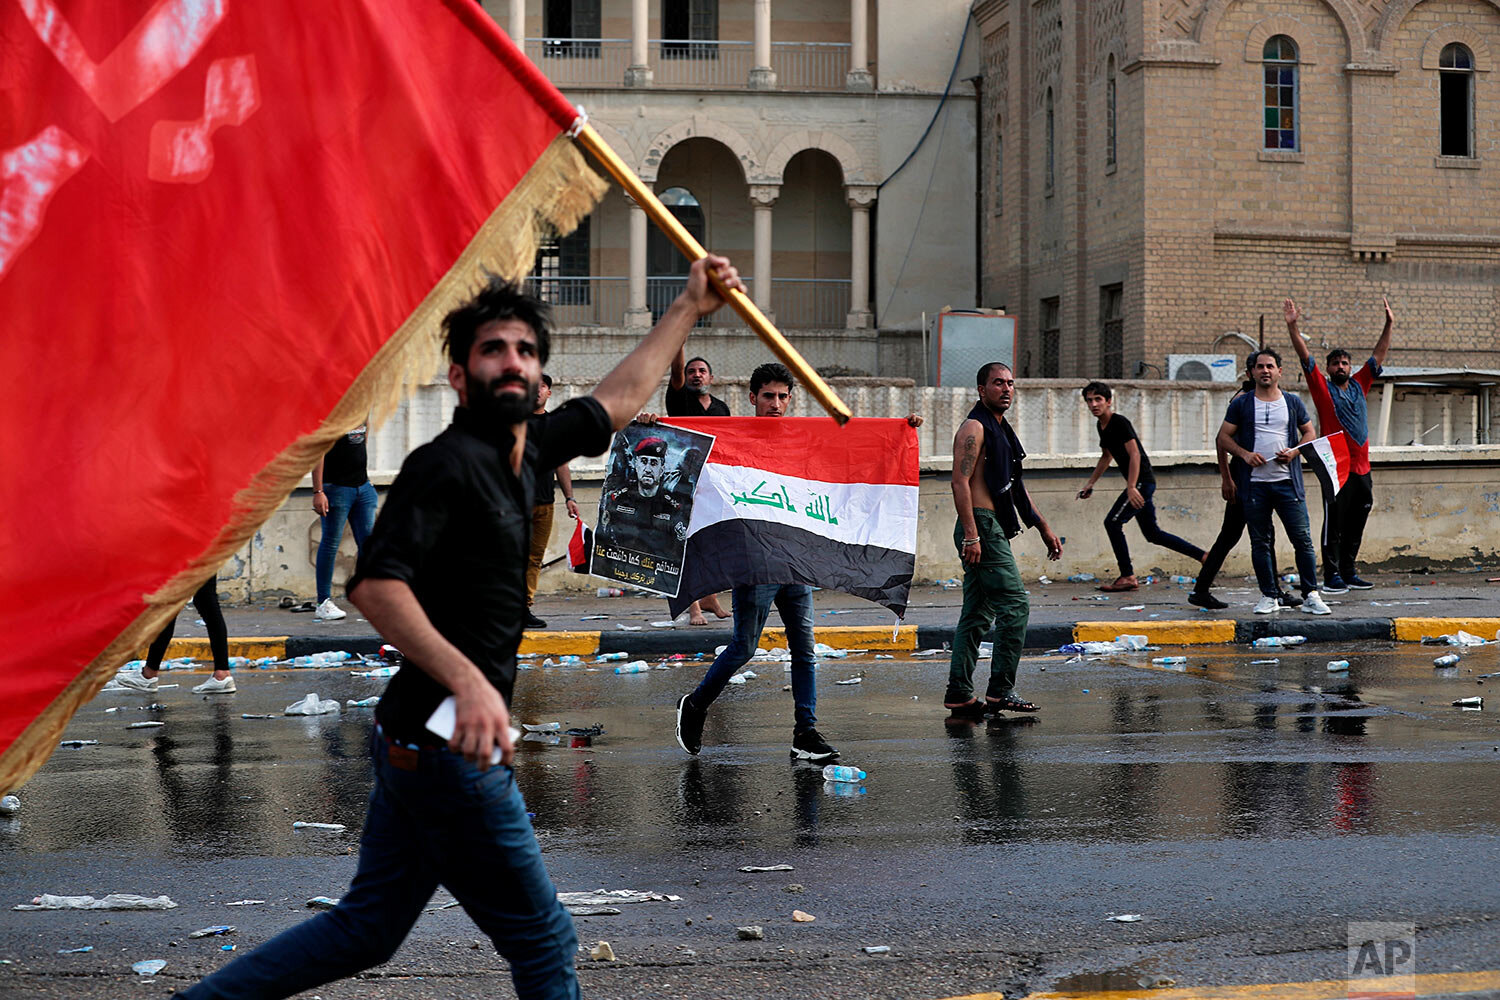 Protestors wave flags and hold a poster of Lt. Gen. Abdul-Wahab al-Saadi during a protest in Tahrir Square, in central Baghdad, Iraq, Tuesday, Oct. 1, 2019. Spontaneous rallies, which began Tuesday, started as mostly young demonstrators took to the streets demanding jobs, improved services like electricity and water, and an end to corruption in the oil-rich country. In a desperate attempt to curb massive rallies, authorities blocked the internet and imposed an around-the-clock curfew in the capital. (AP Photo/Khalid Mohammed)